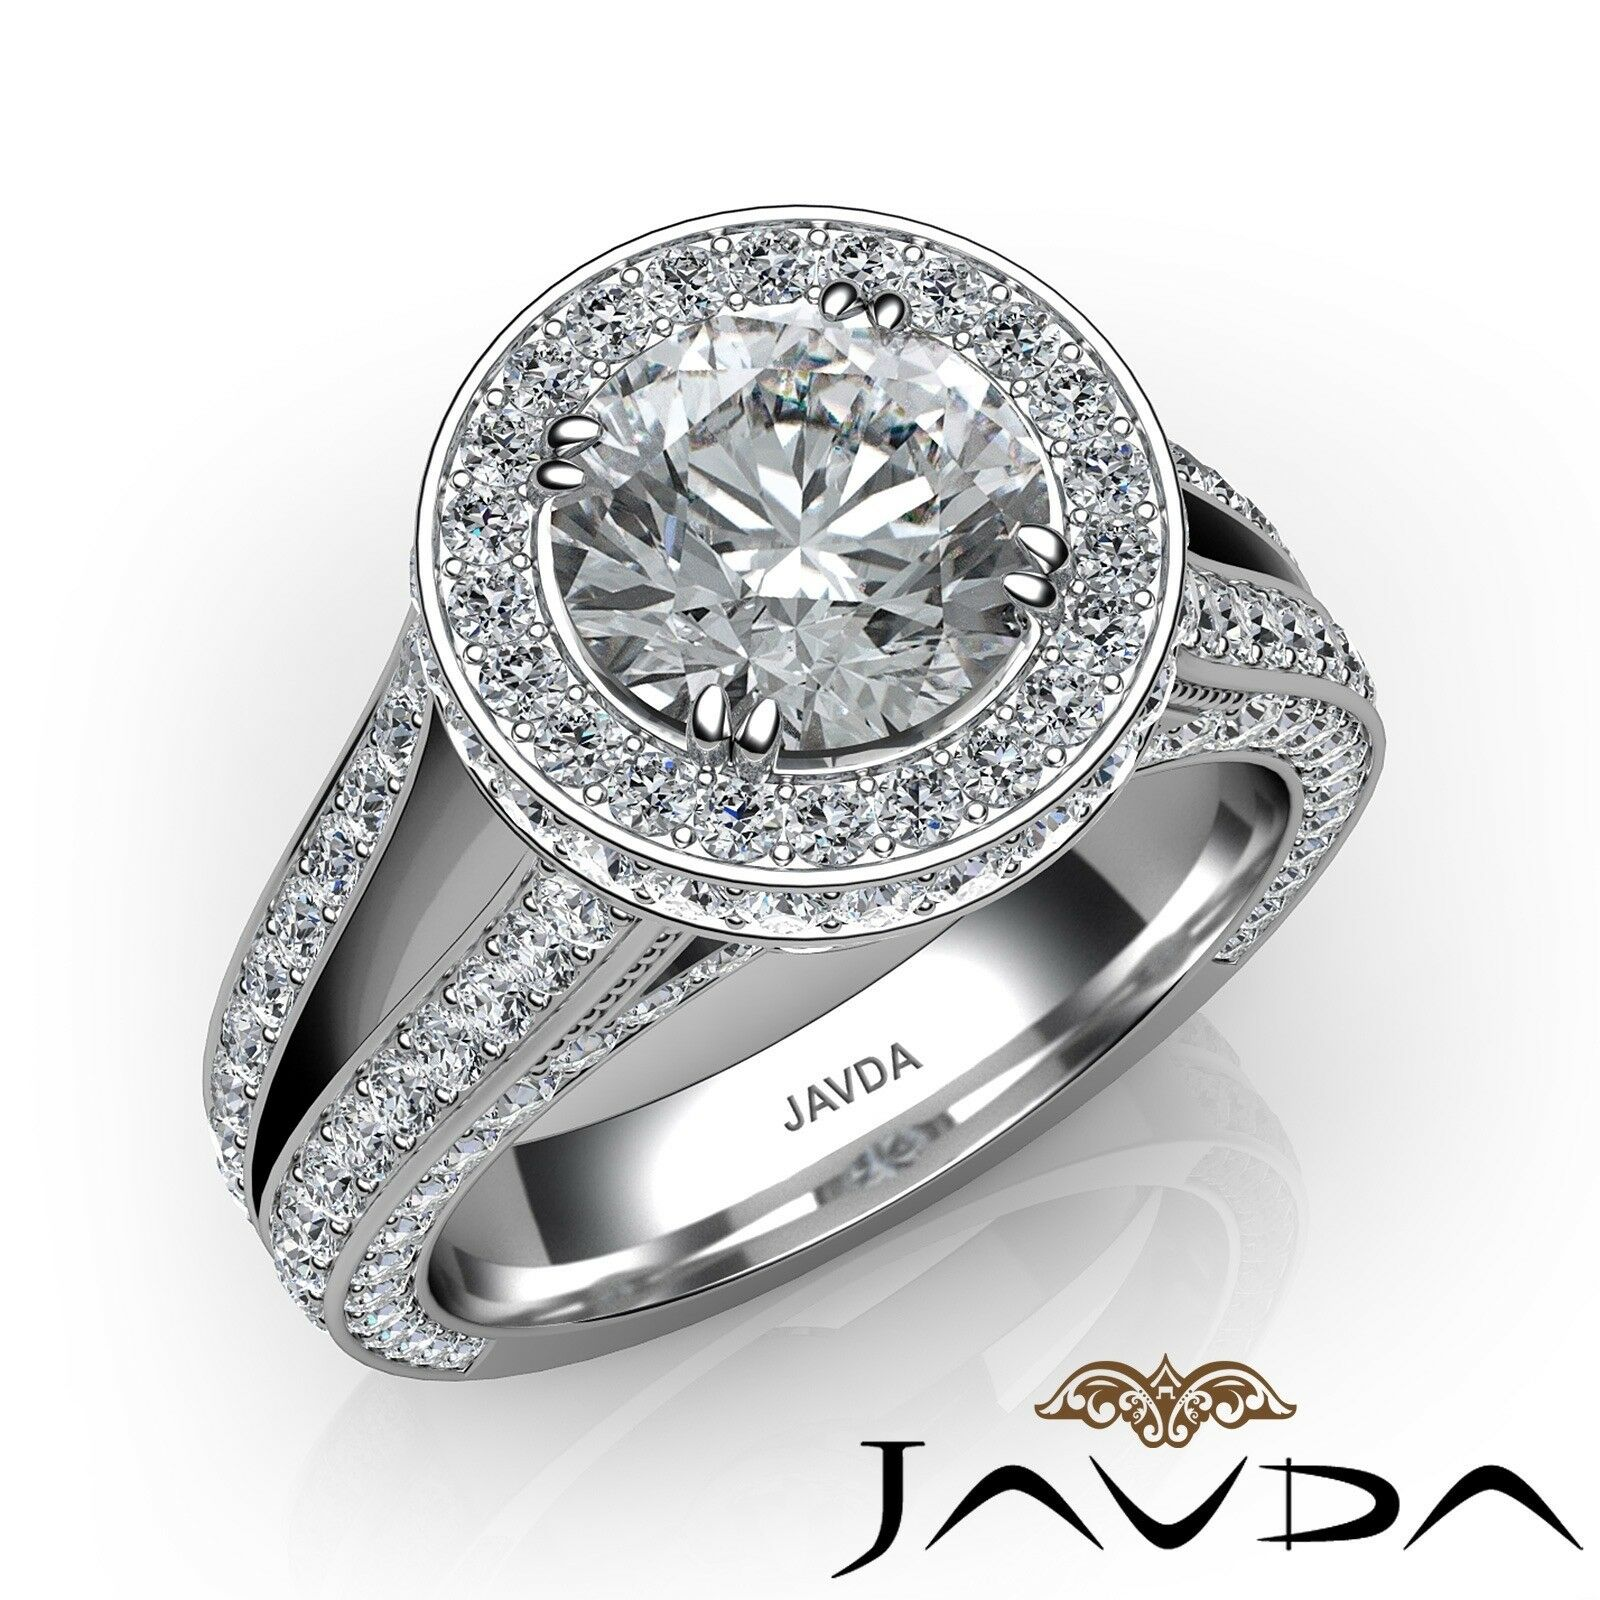 3.21ctw Halo Split Shank Bridge Round Diamond Engagement Ring GIA F-VVS1 W Gold